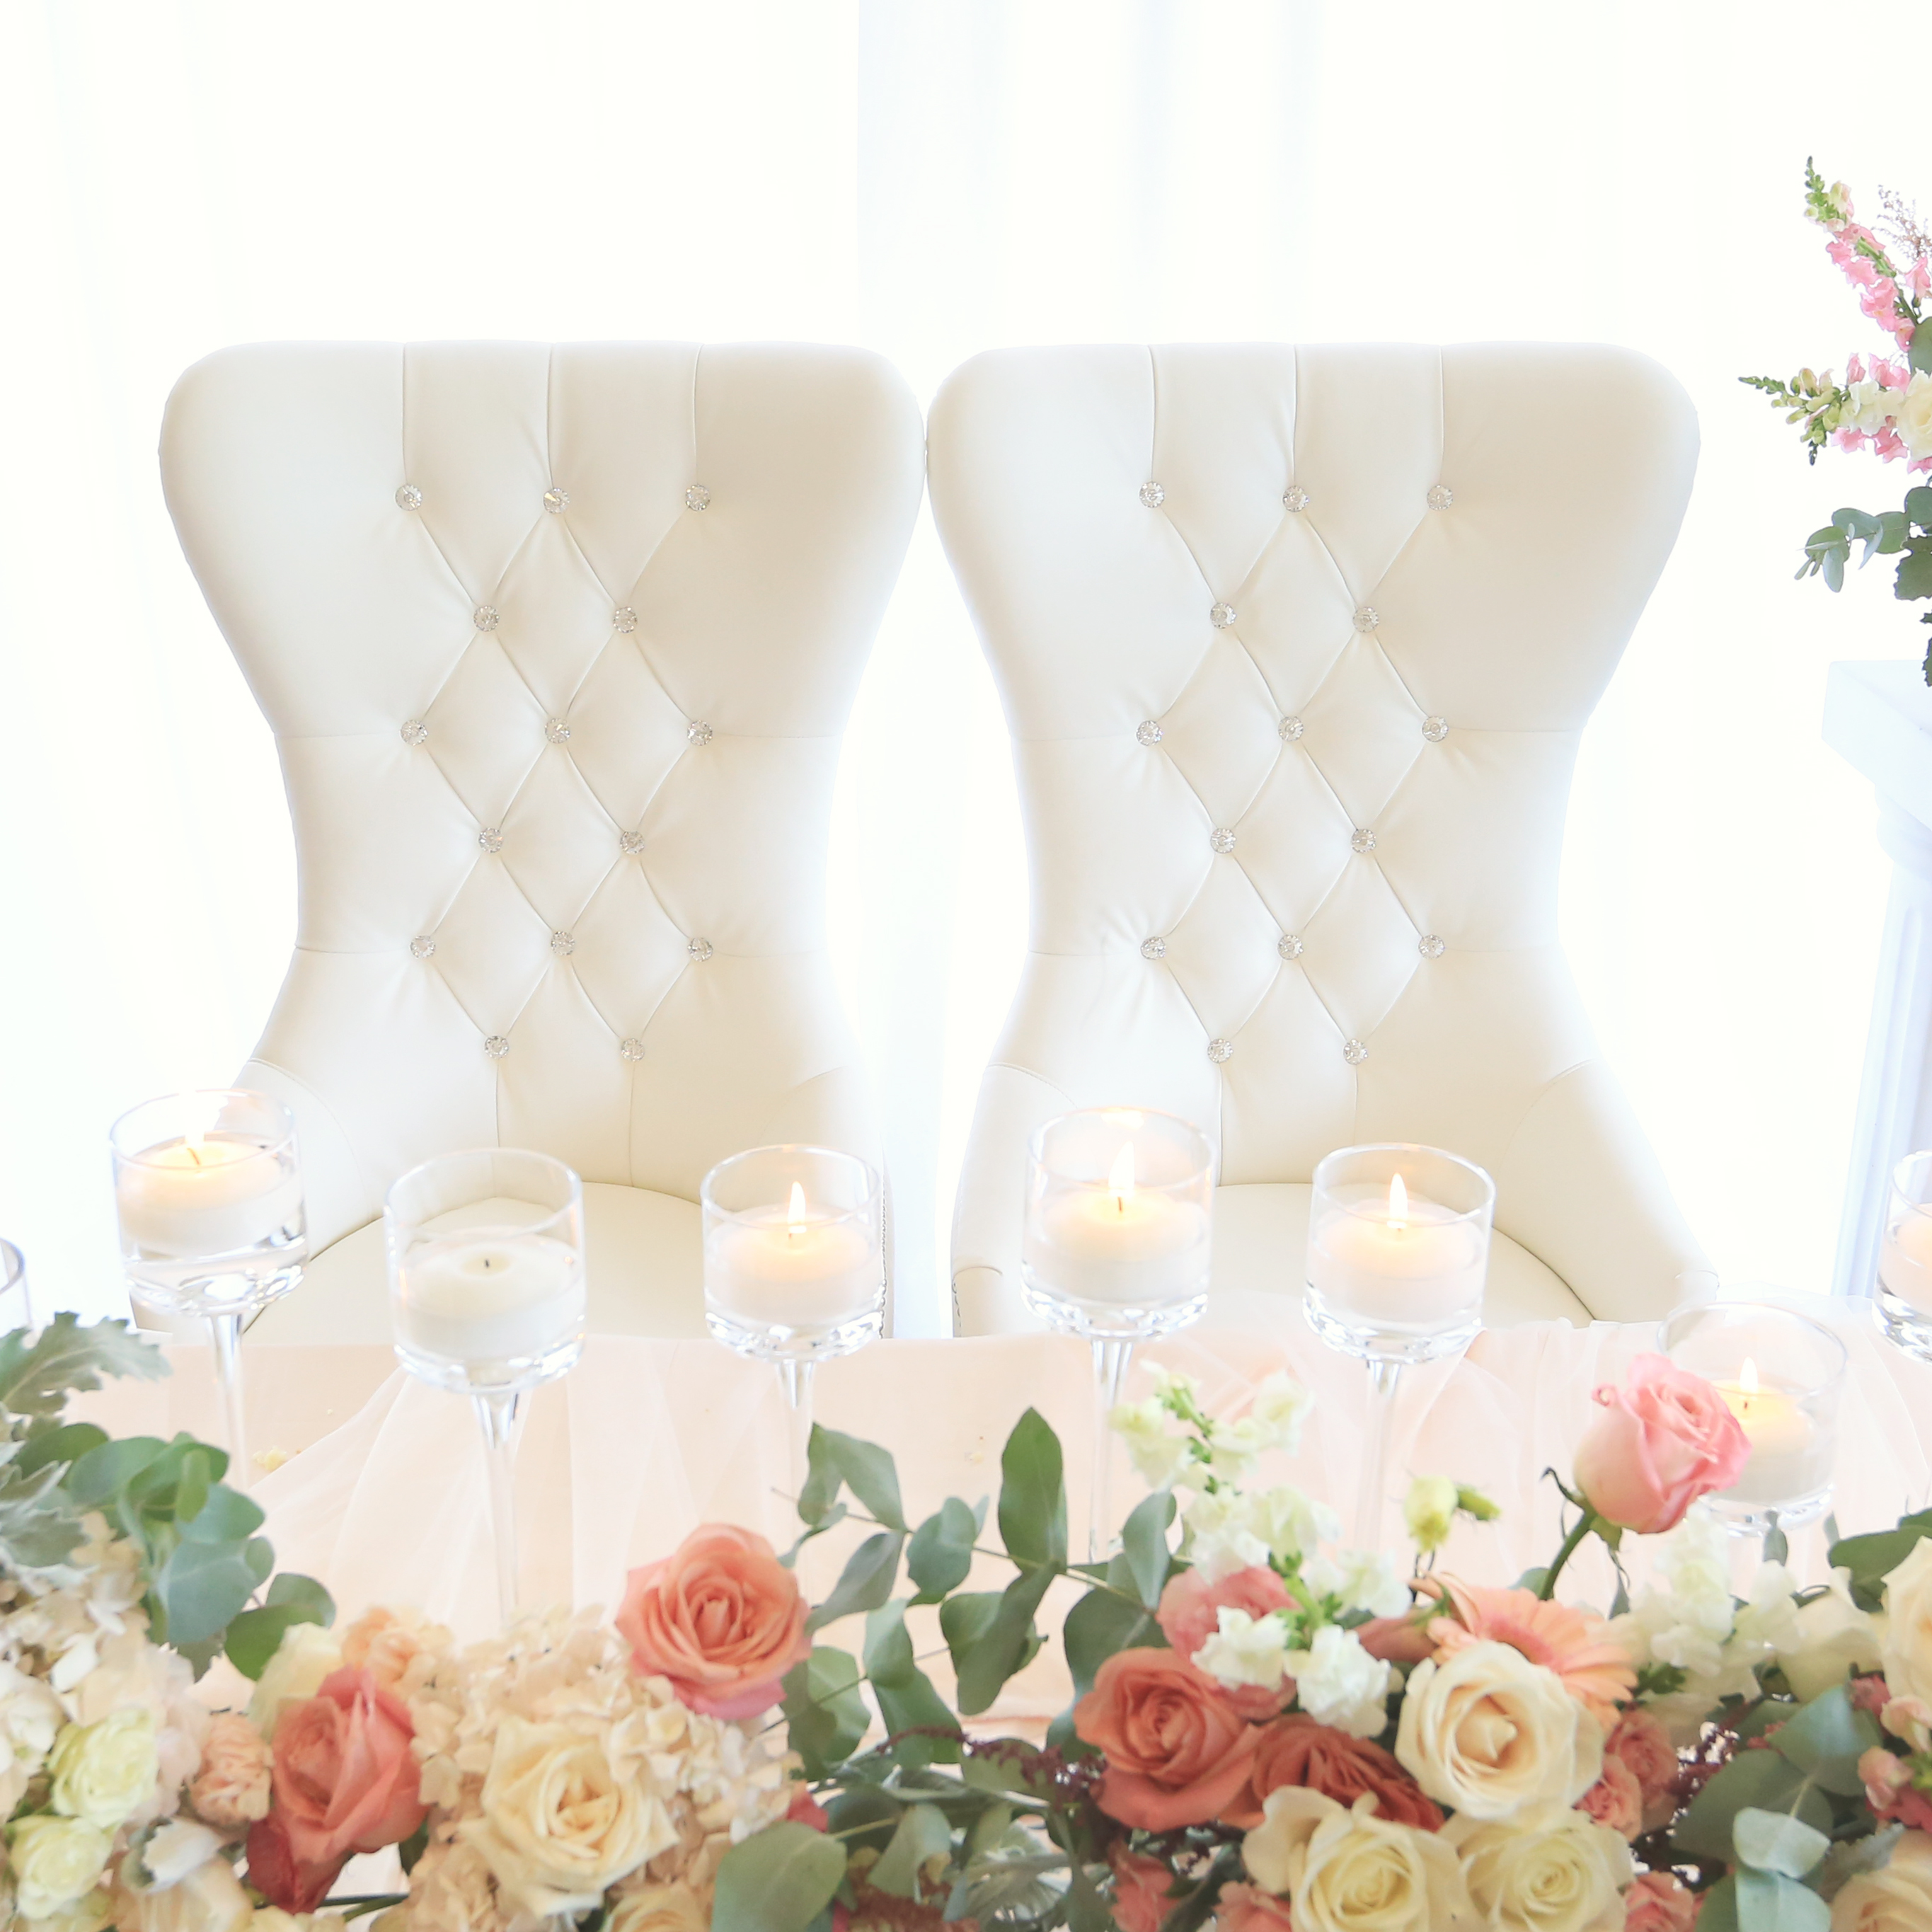 king and queen chairs for rent swing chair in bangladesh bride groom white 43 rental